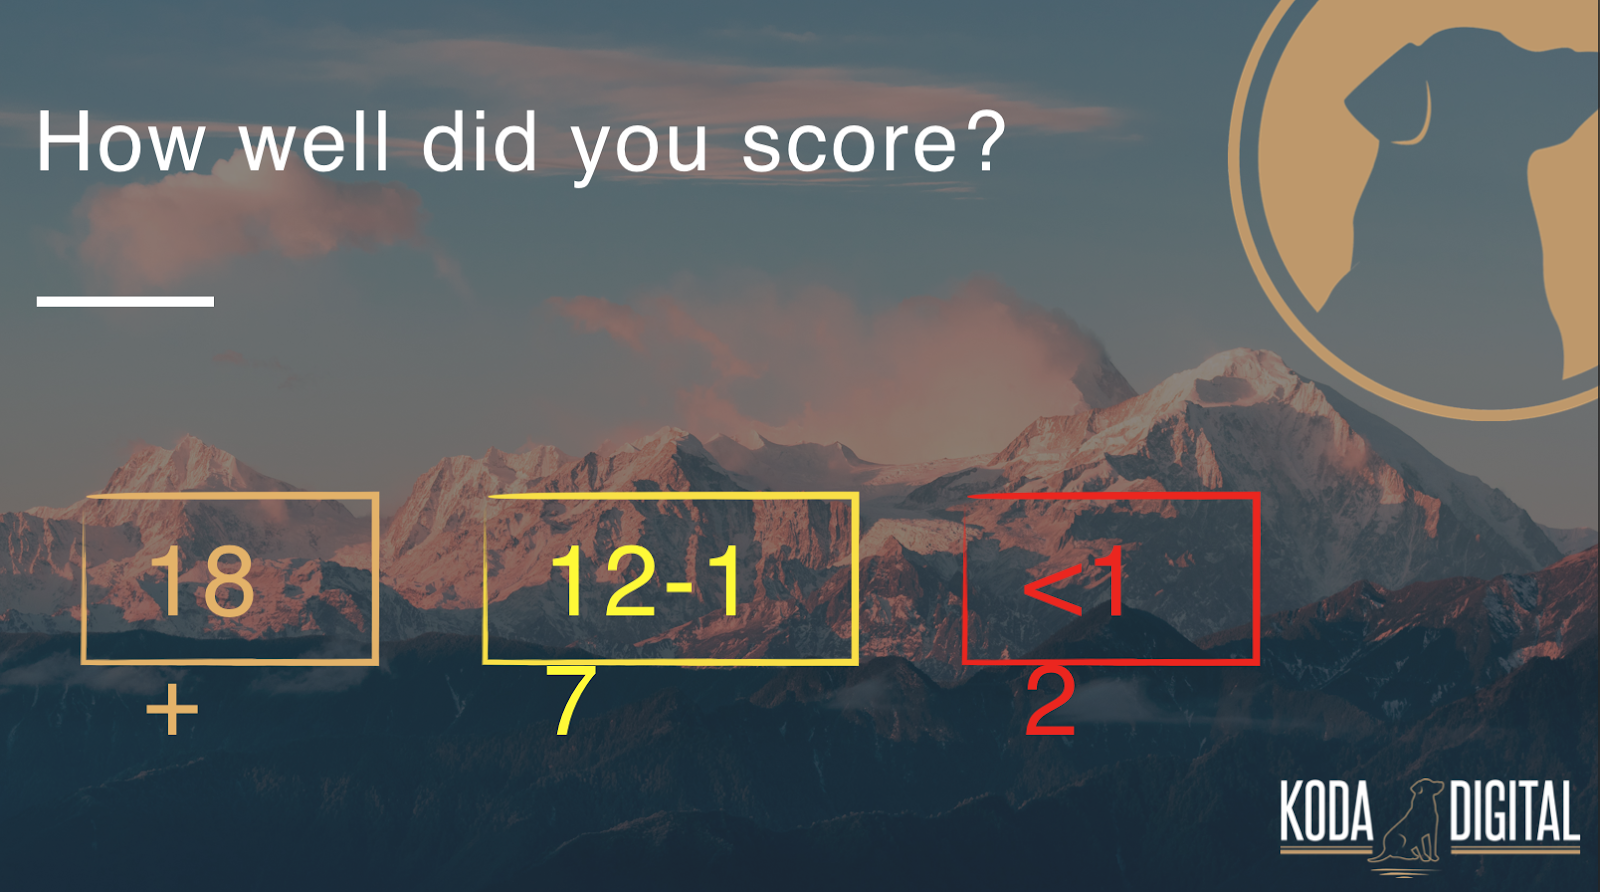 How well did you score in this digital marketing assessment? Is your medical practice's marketing up to par?